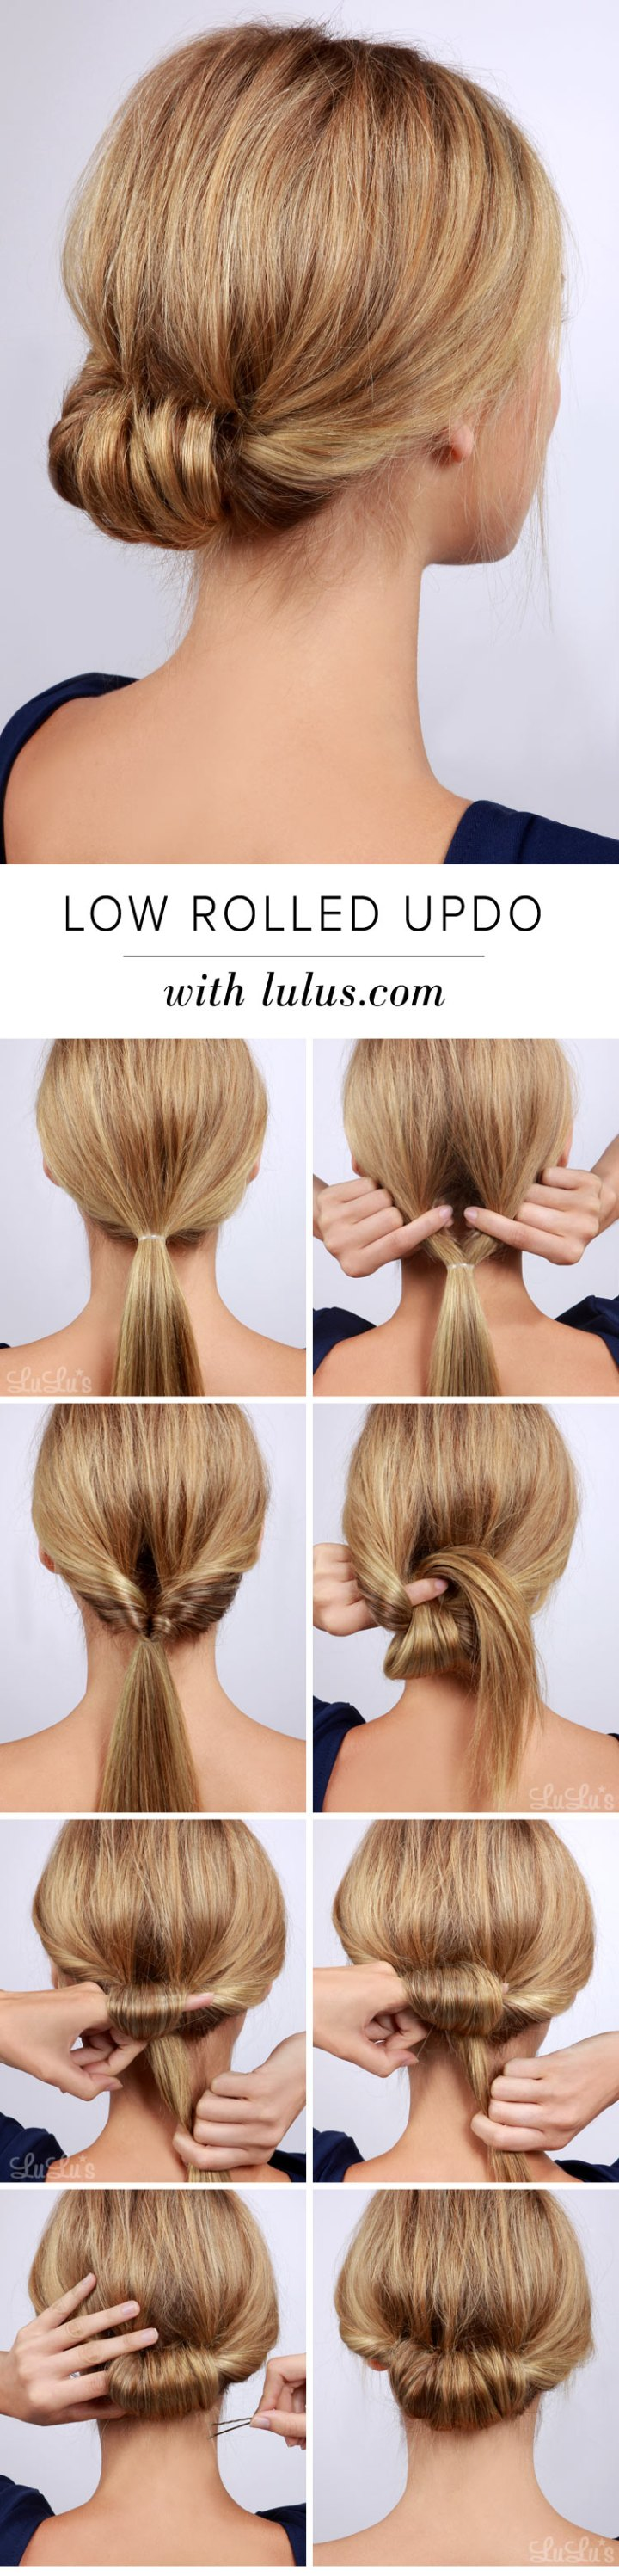 Lulus How To Low Rolled Updo Hair Tutorial Lulus Fashion Blog